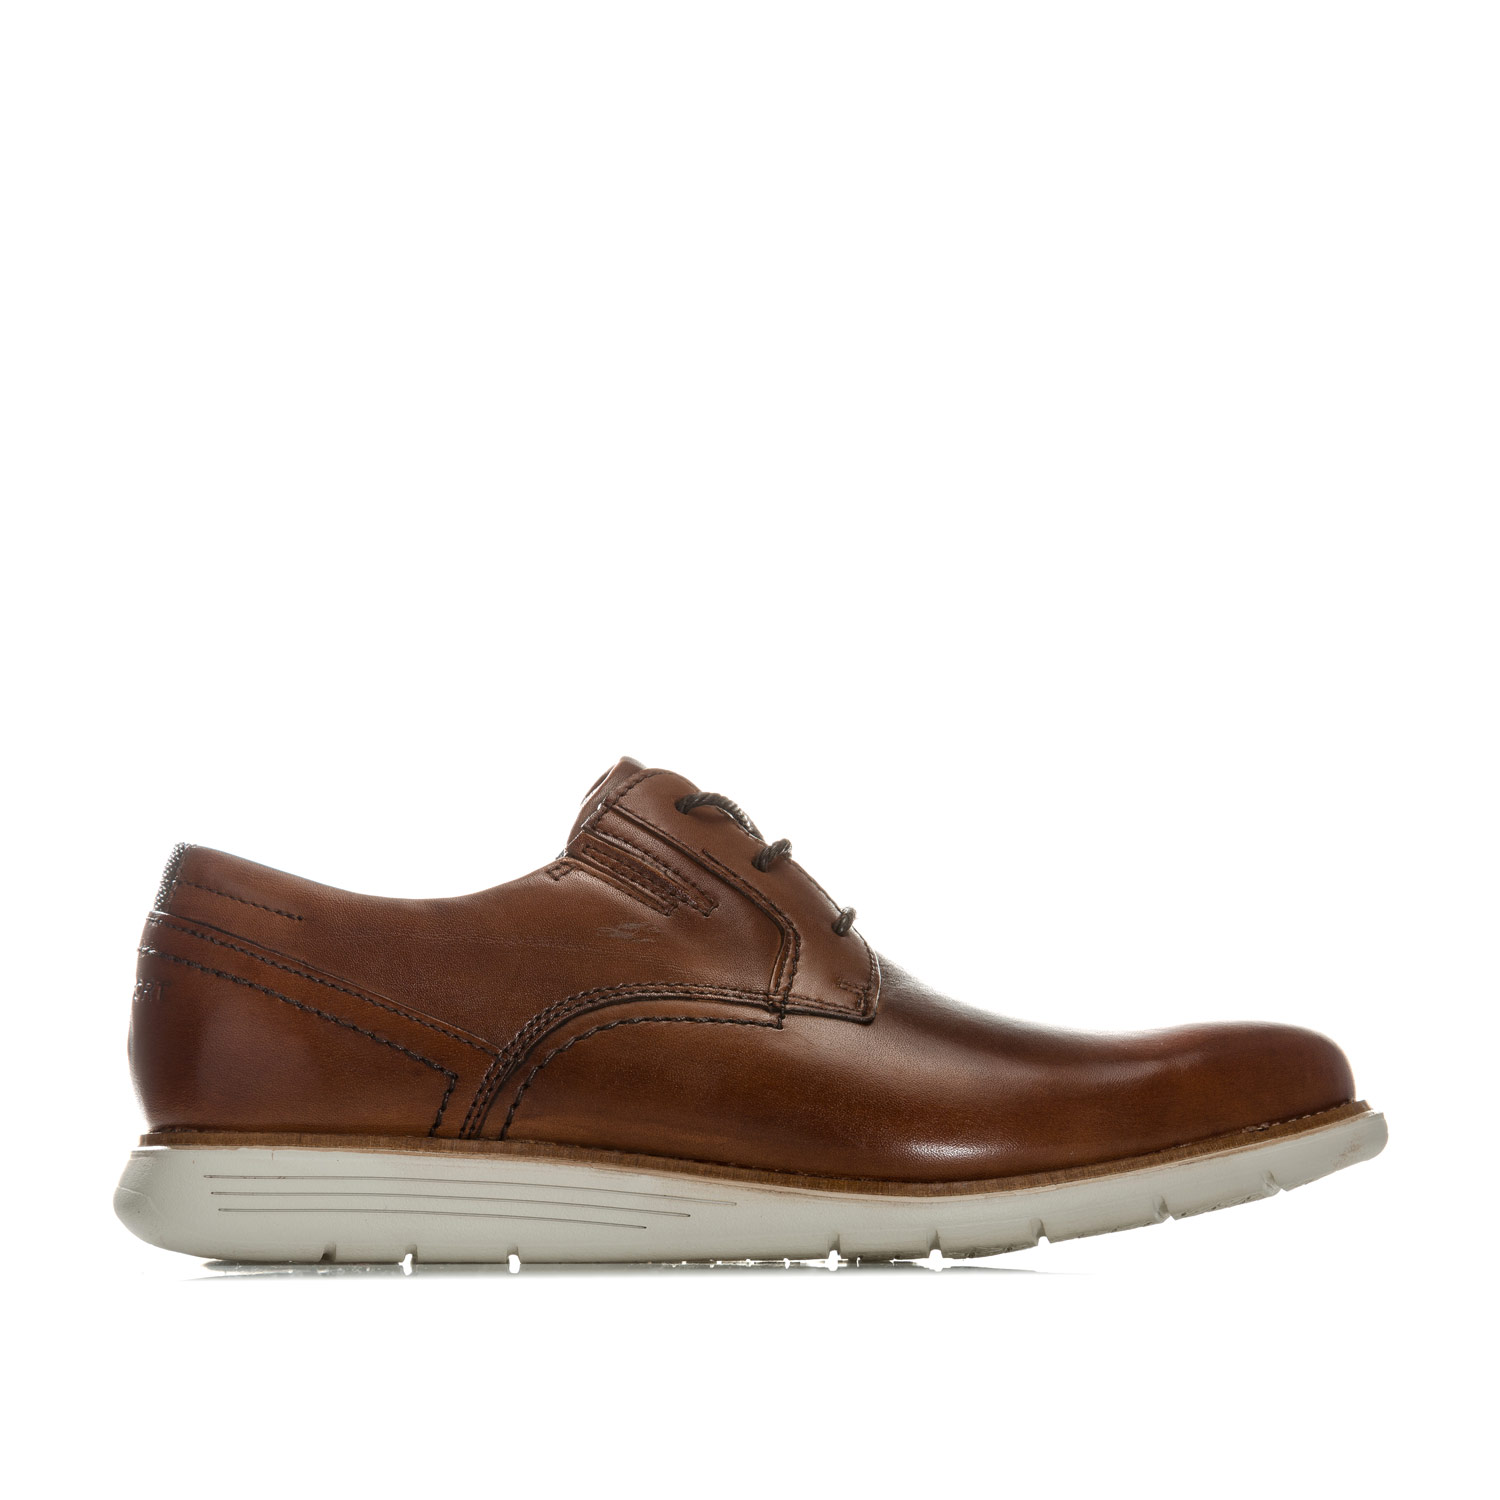 rockport shoes for men